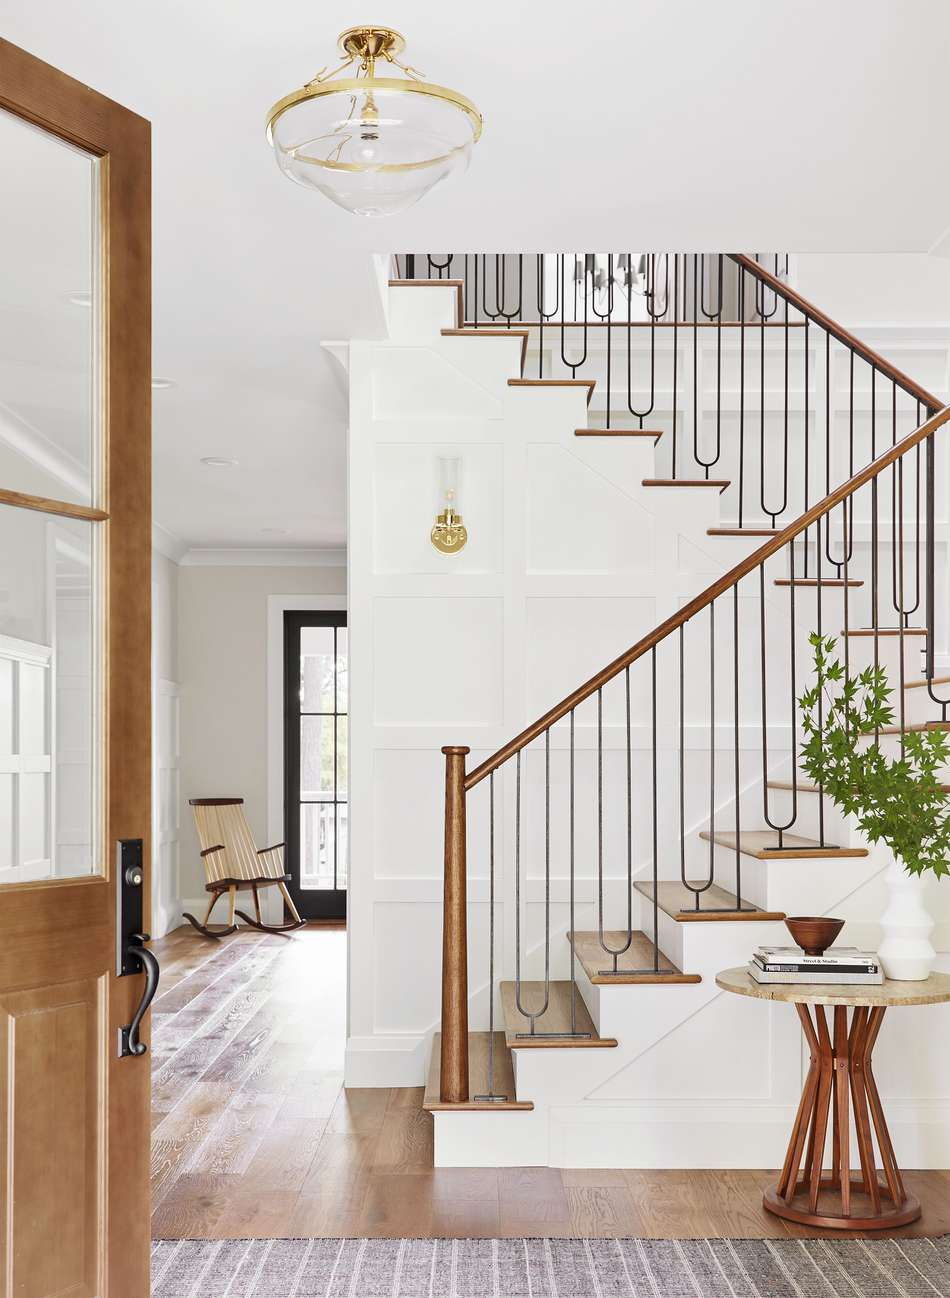 emily henderson, stairway decor, interior design, design ideas, design inspiration, london rugs, runners, rug collections, oriental rugs, persian rugs